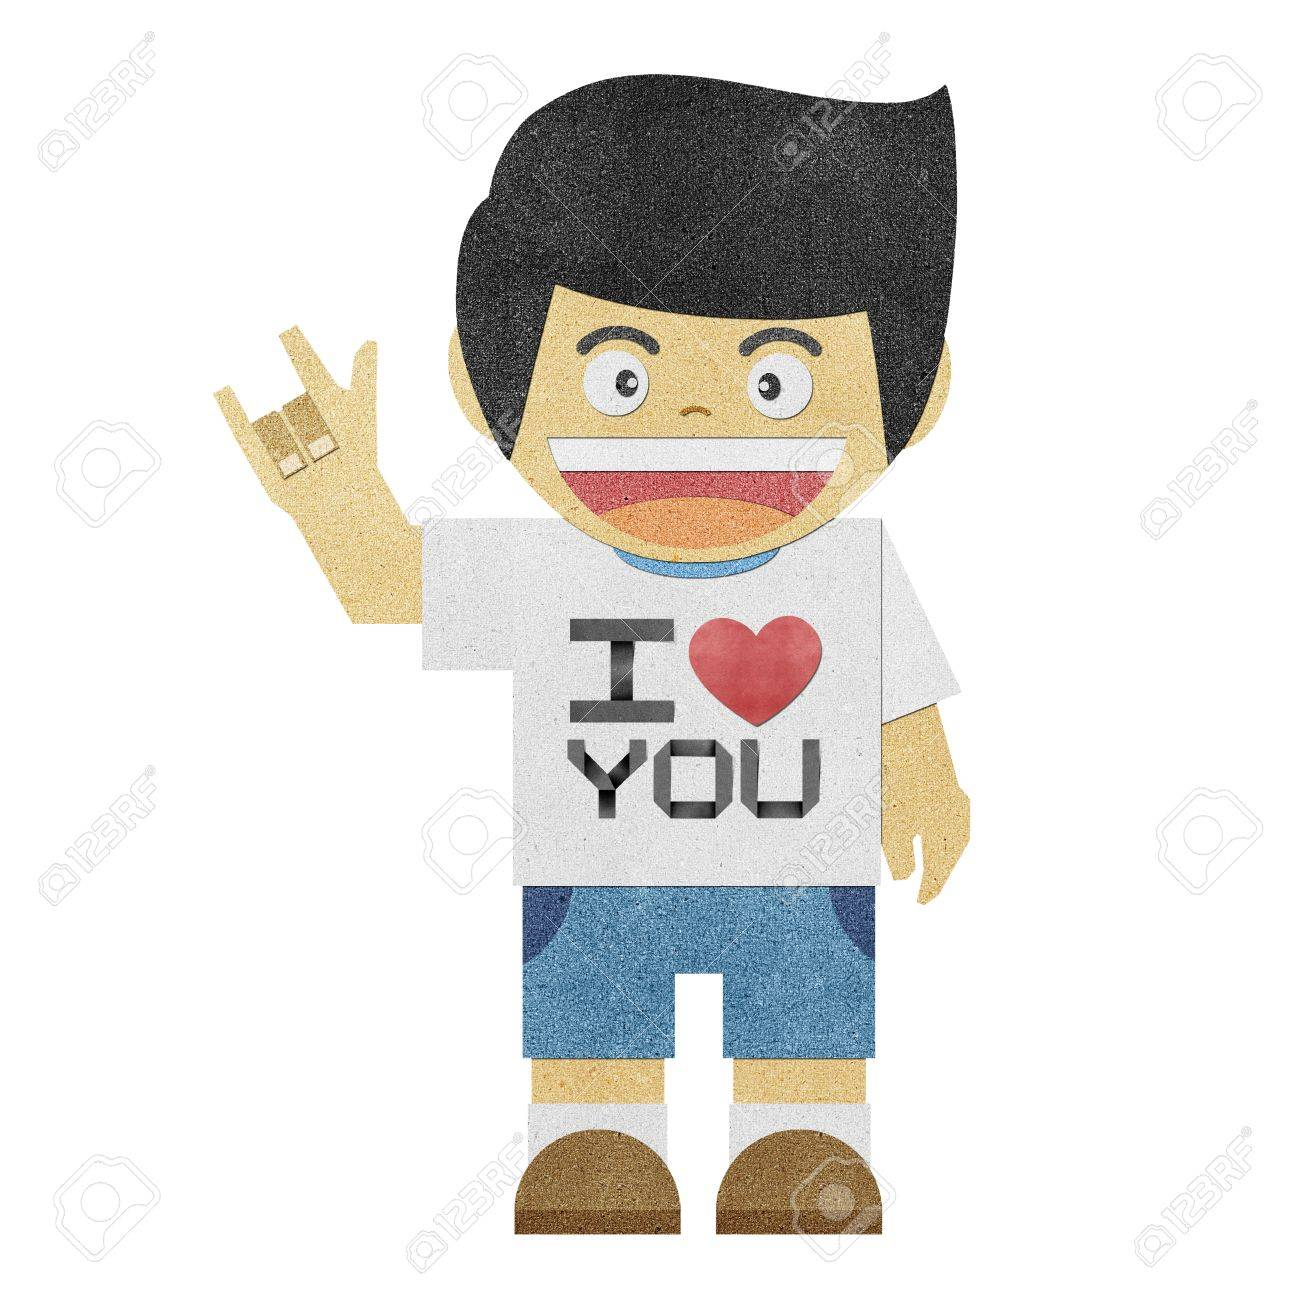 Isolate paper boy with i love you alphabet recycled paper craft isolate paper boy with i love you alphabet recycled paper craft stock photo 12061629 jeuxipadfo Images